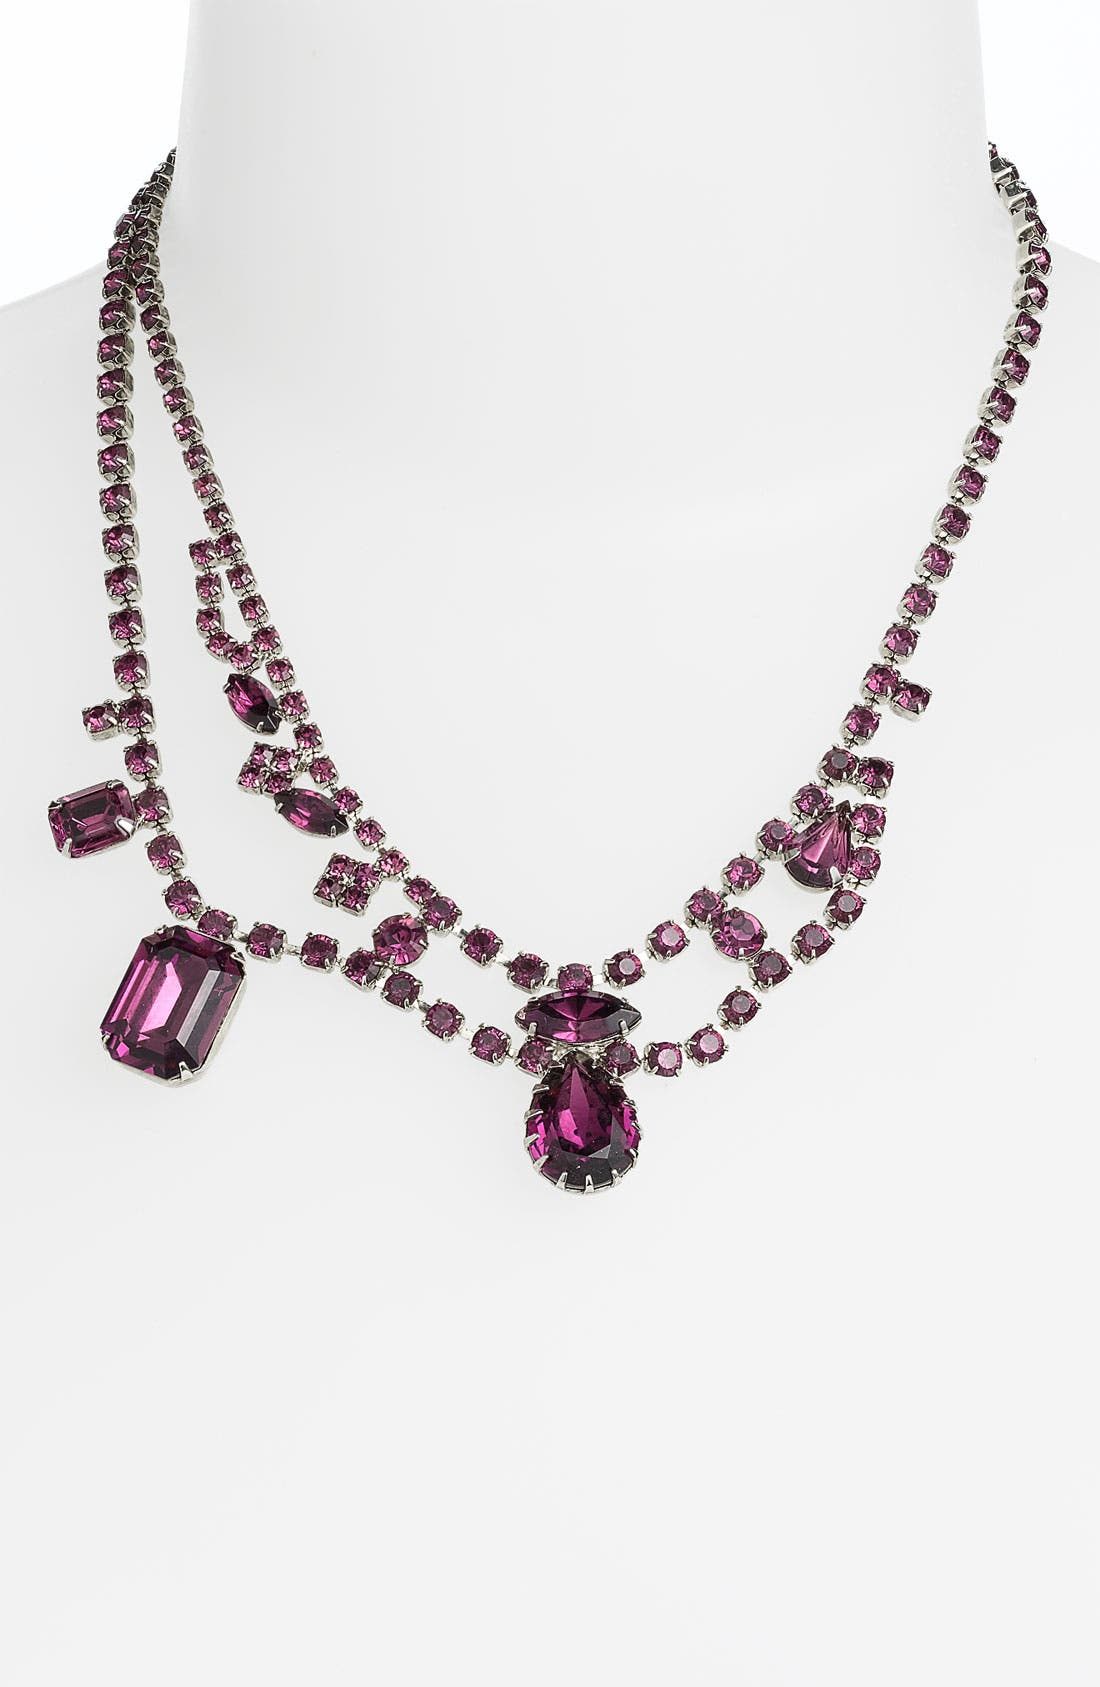 Main Image - Tom Binns 'Madame Dumont' Double Strand Necklace